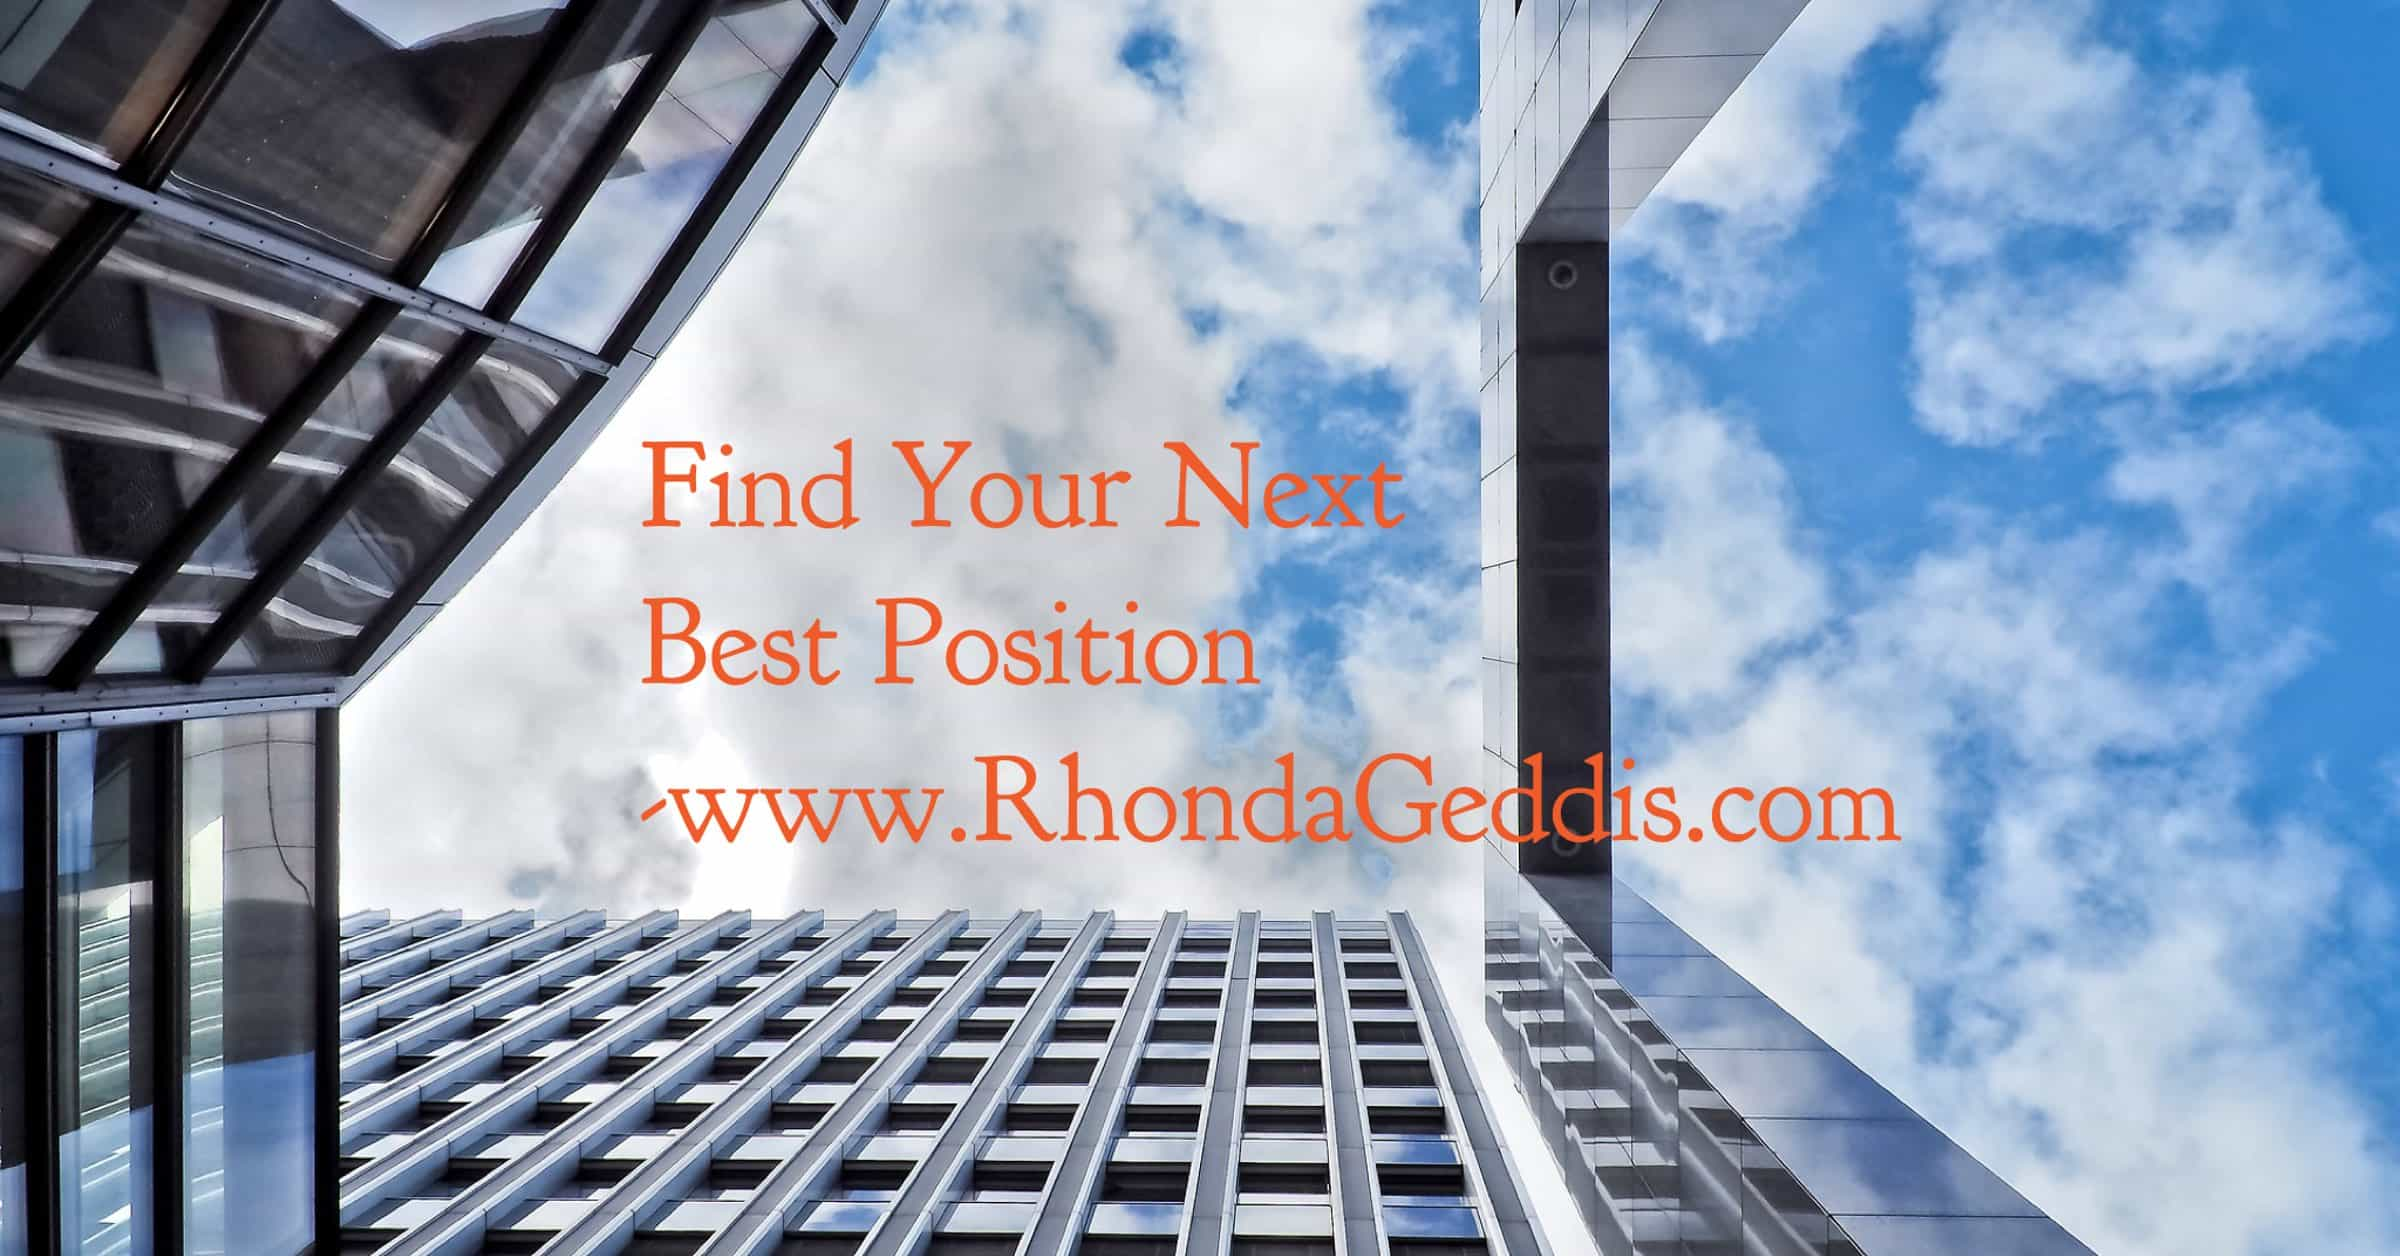 Find Your Next Best Position